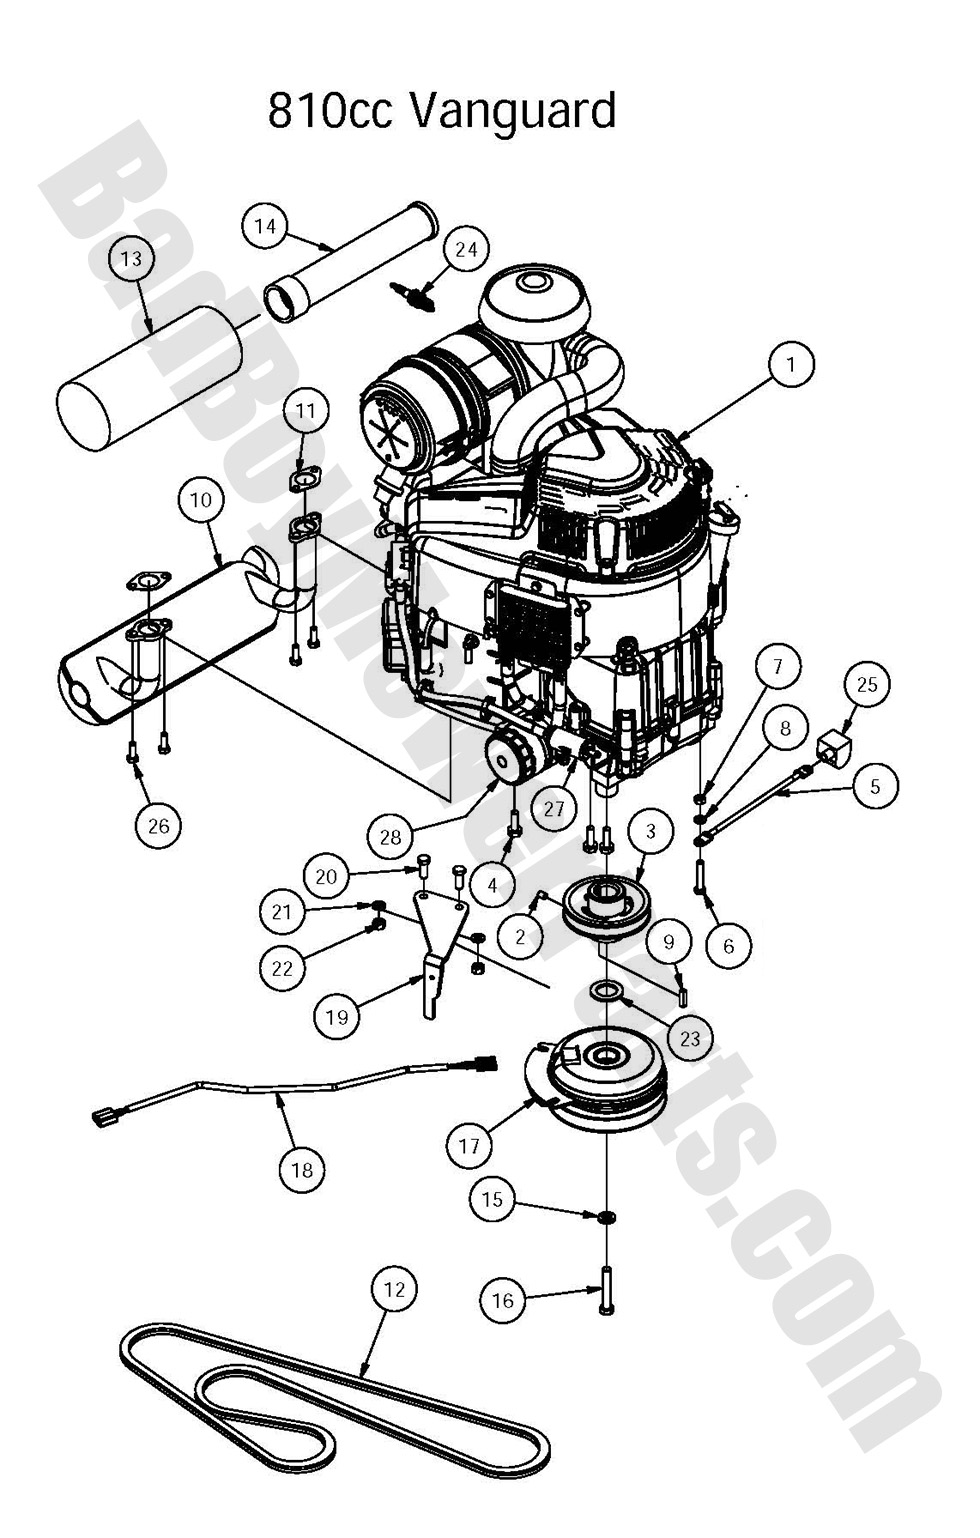 1976 Corvette Emissions Diagram together with Honda Gx270 Parts Diagram Carburetor in addition 1981 Corvette Wiring Diagram together with Gm Fuel Filter With Return furthermore 1965 Pontiac Lemans Wiring Diagram. on p 0900c1528007dbe6